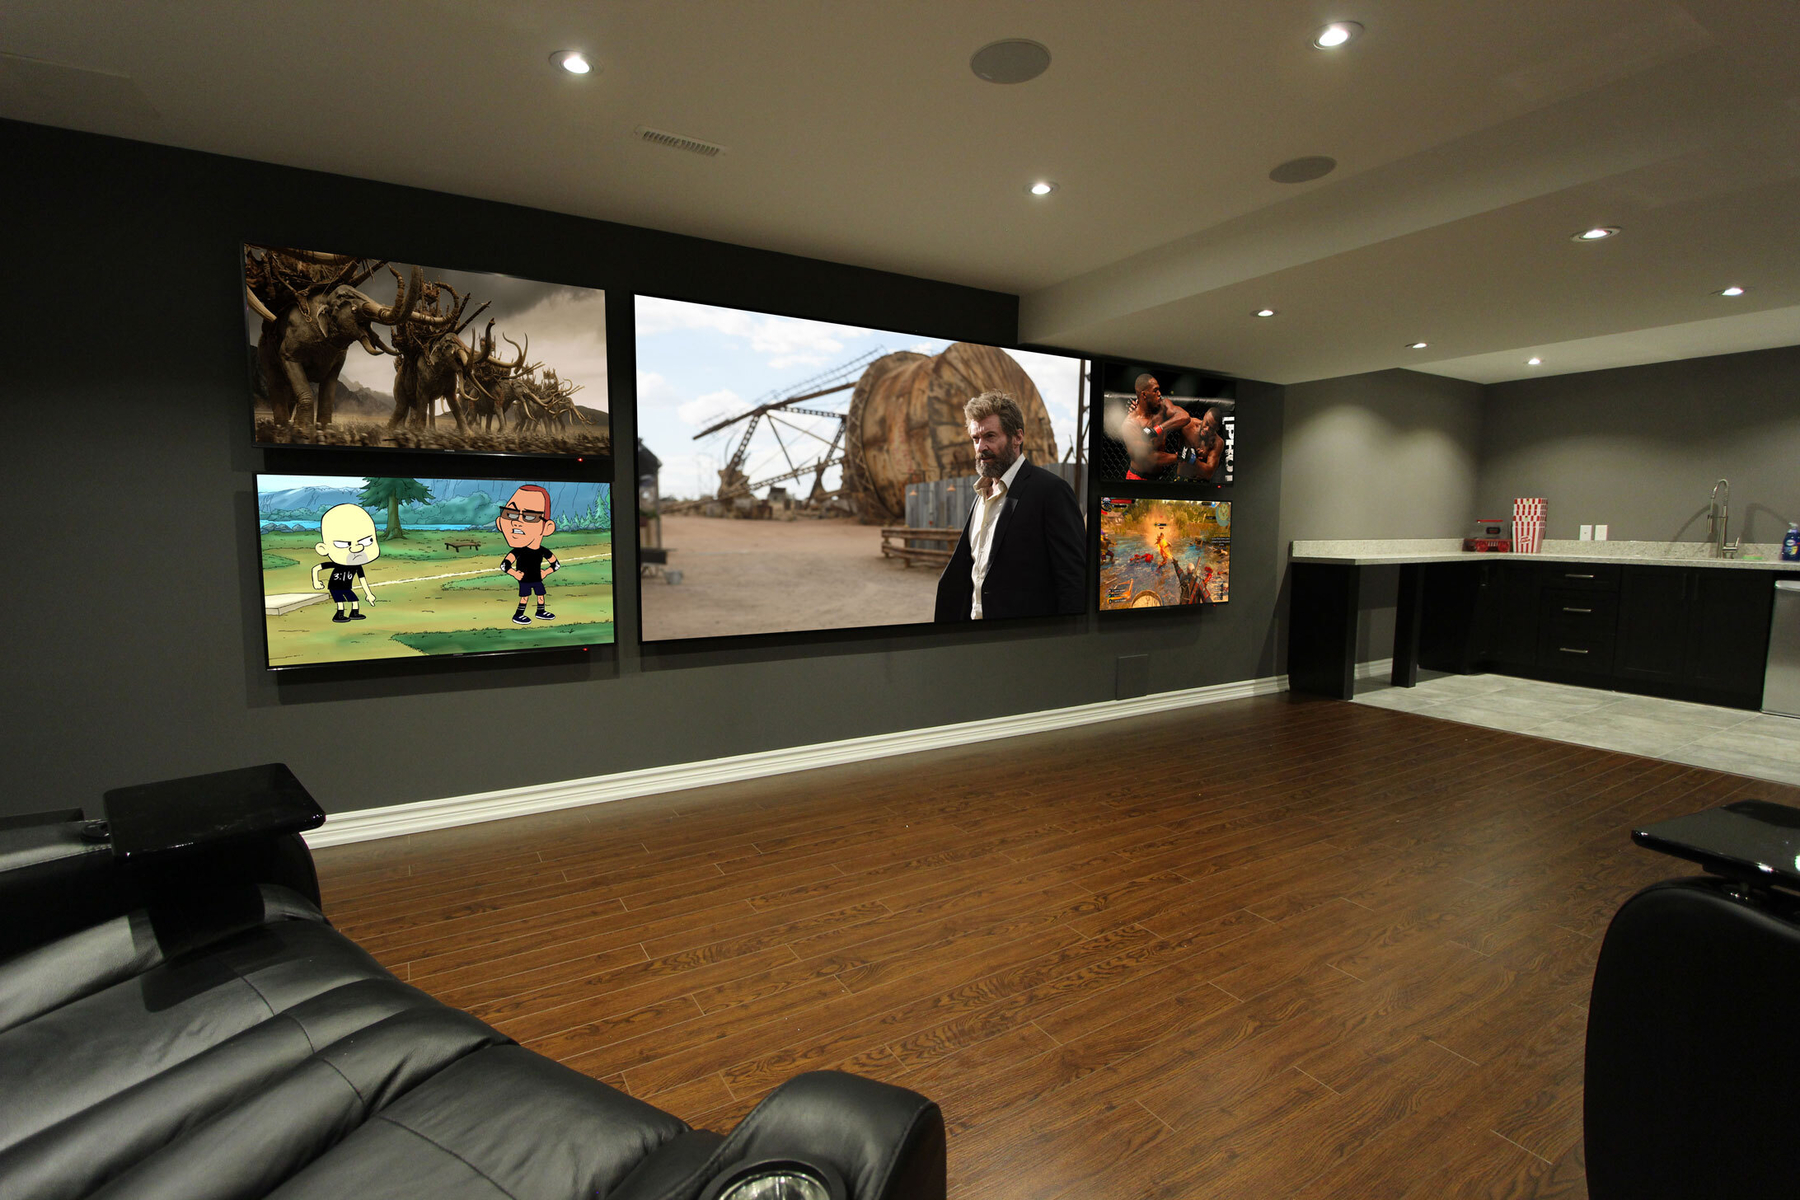 What Are Your Options for Better Sound in Your TV Rooms?